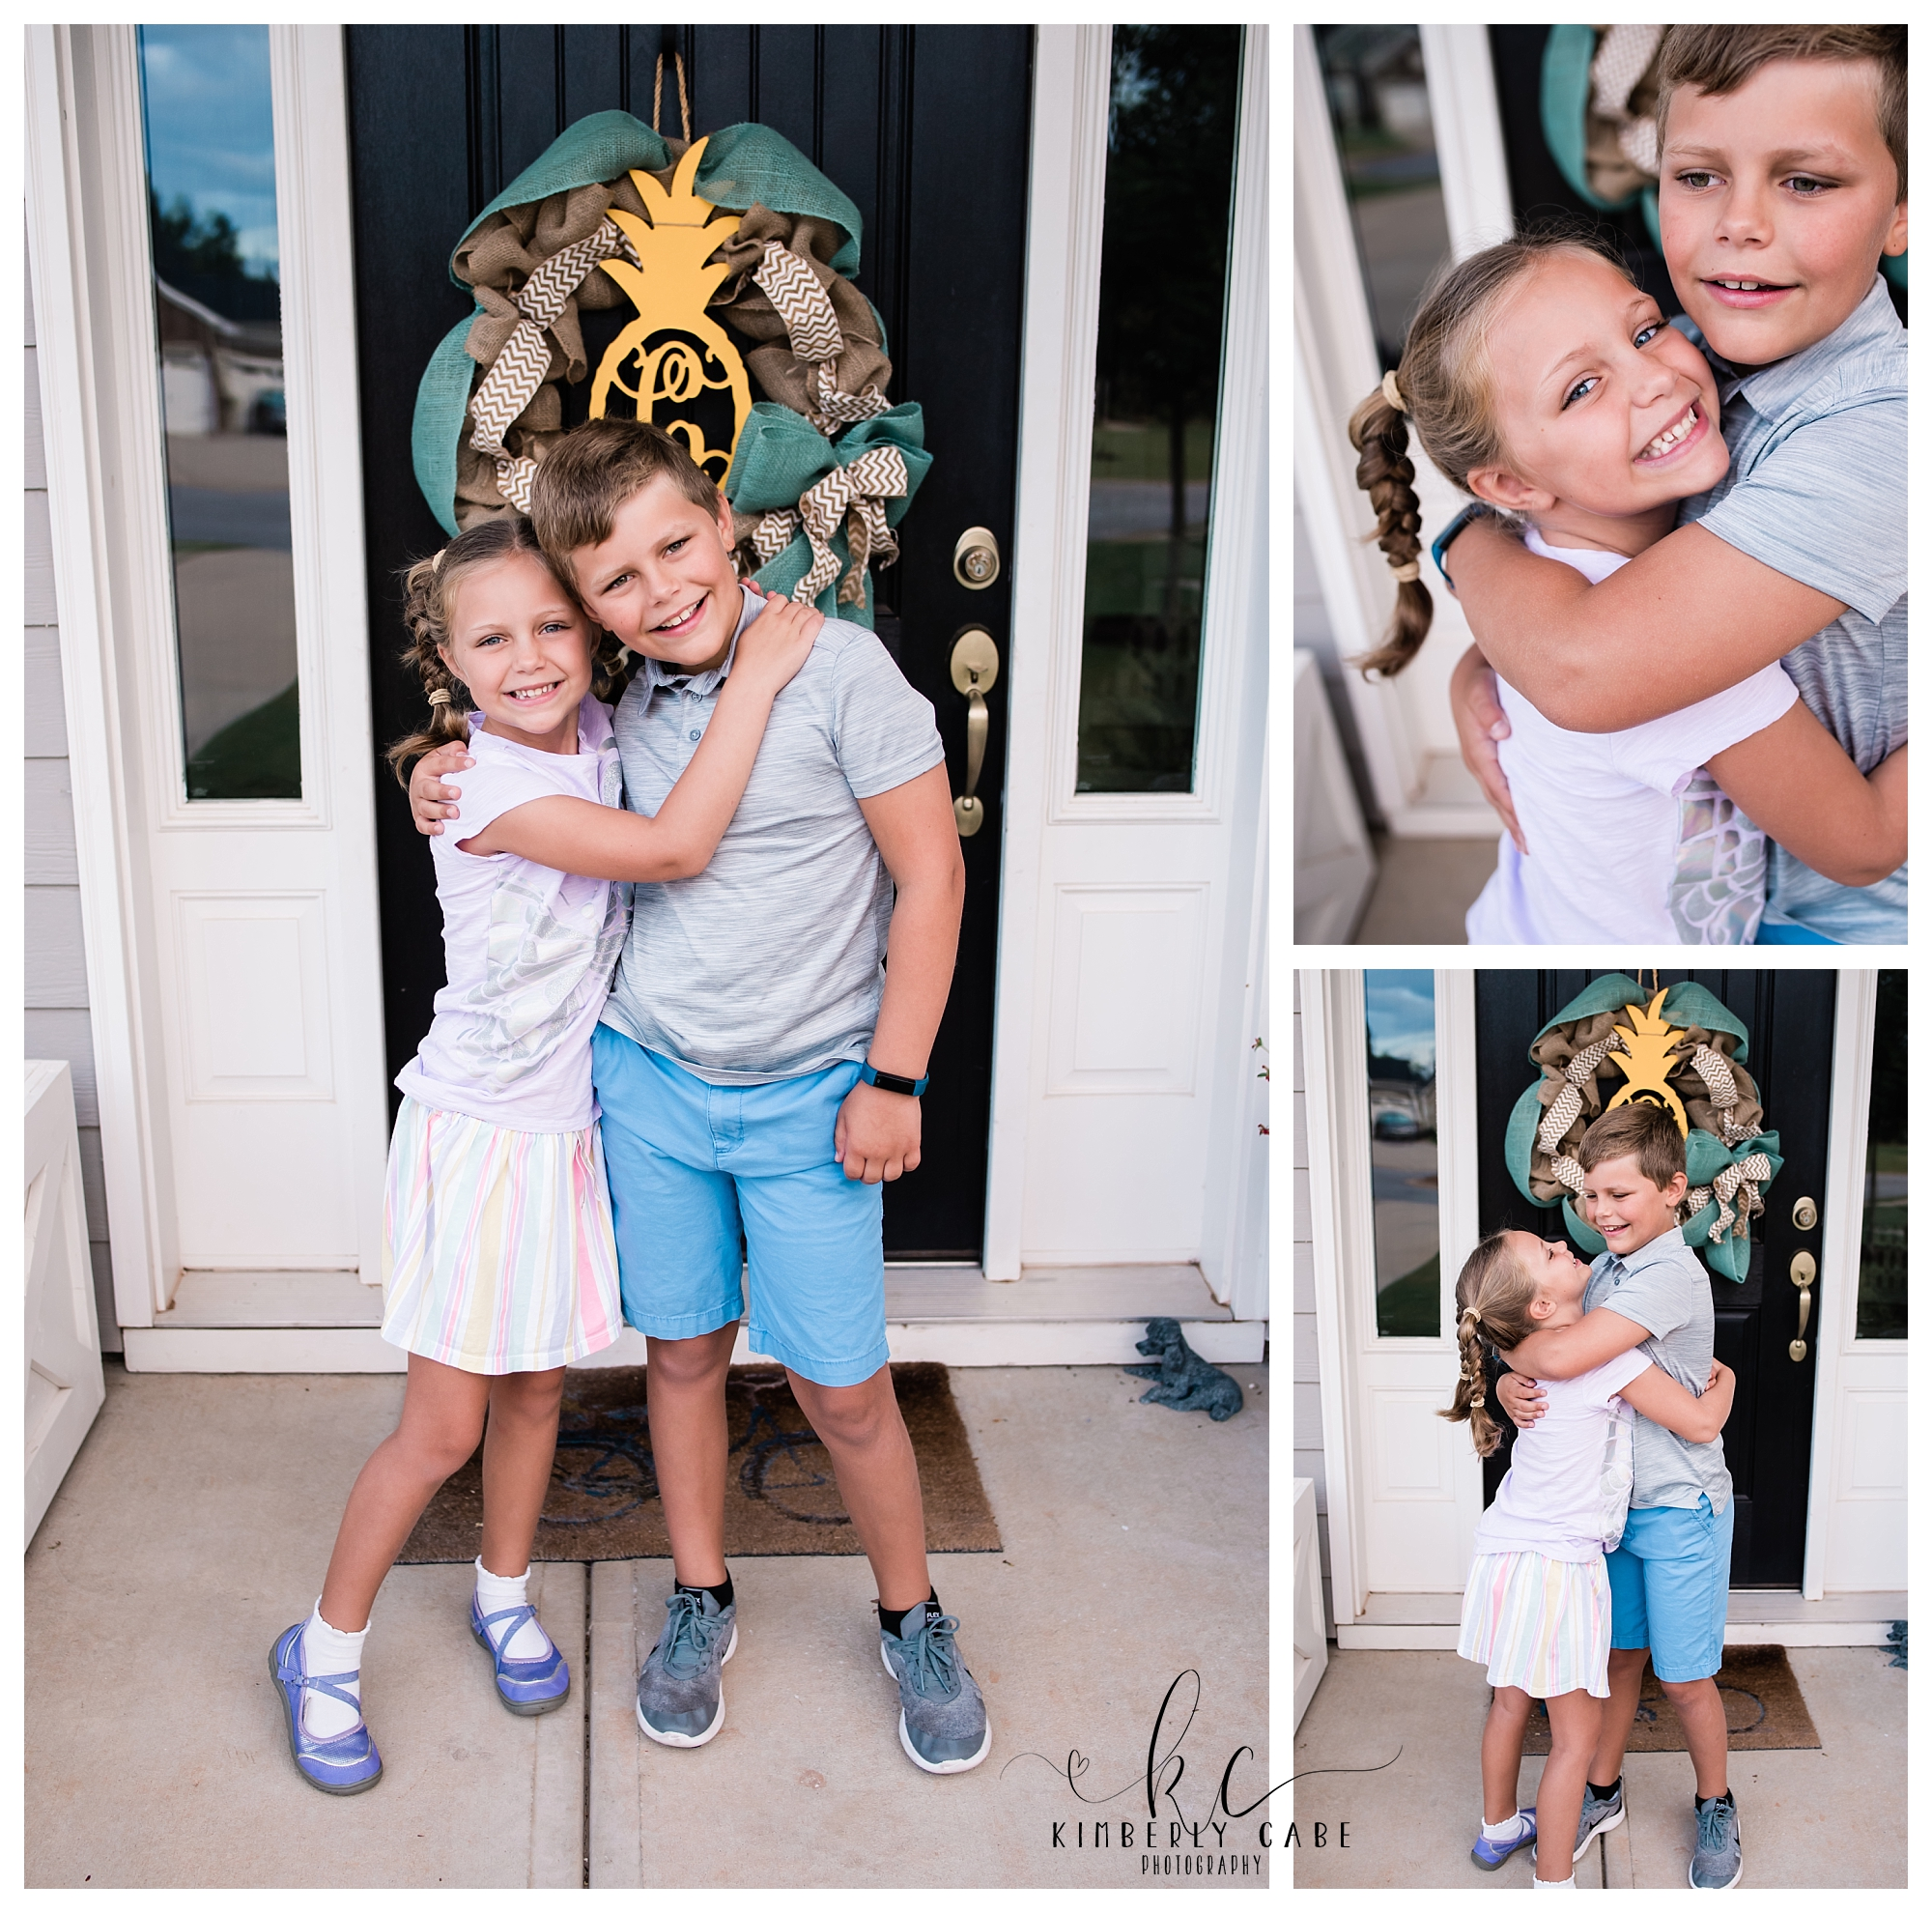 Kimberly Cabe Photography 1st Day of School